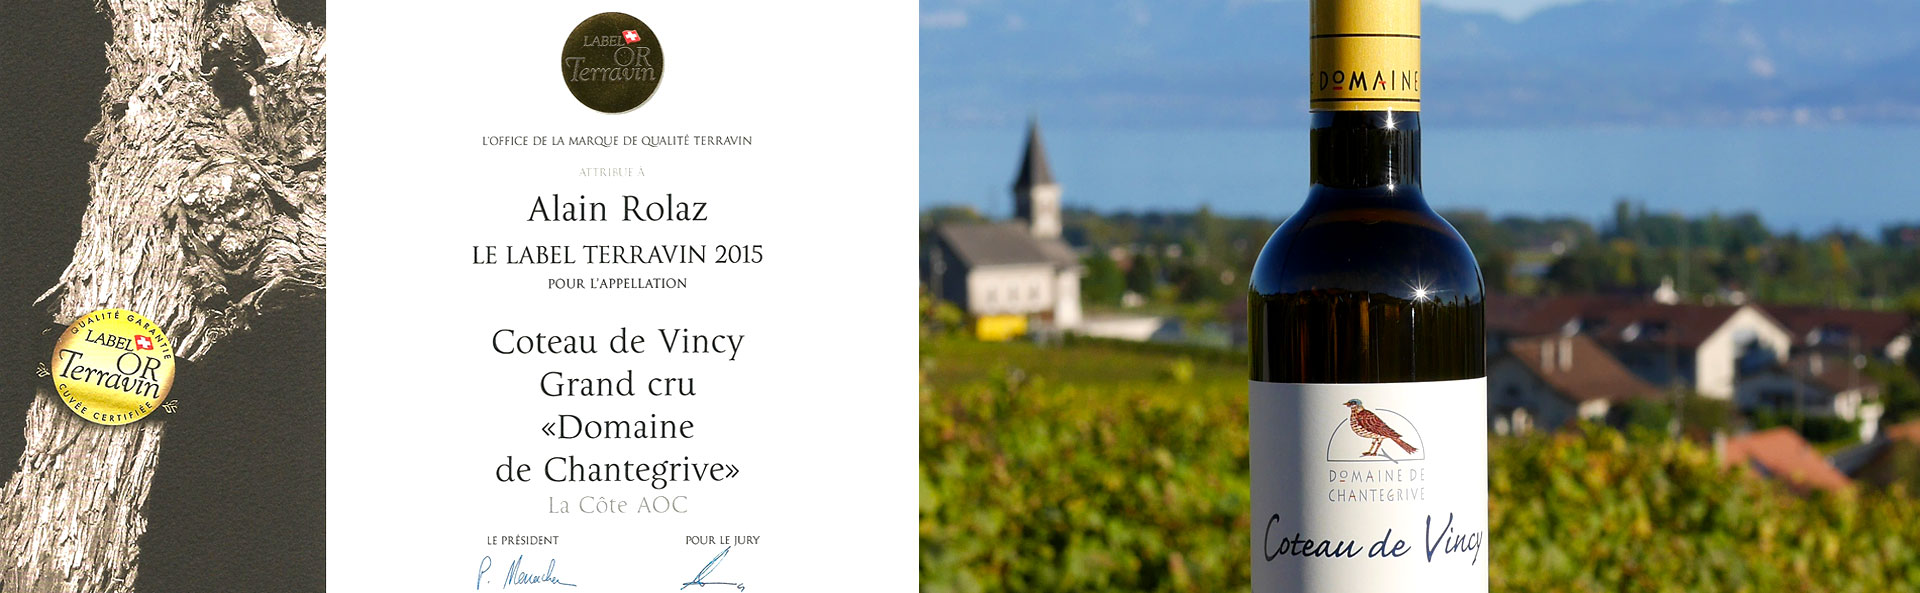 Coteau de Vincy Label Terravin 2015 Domaine de Chantegrive